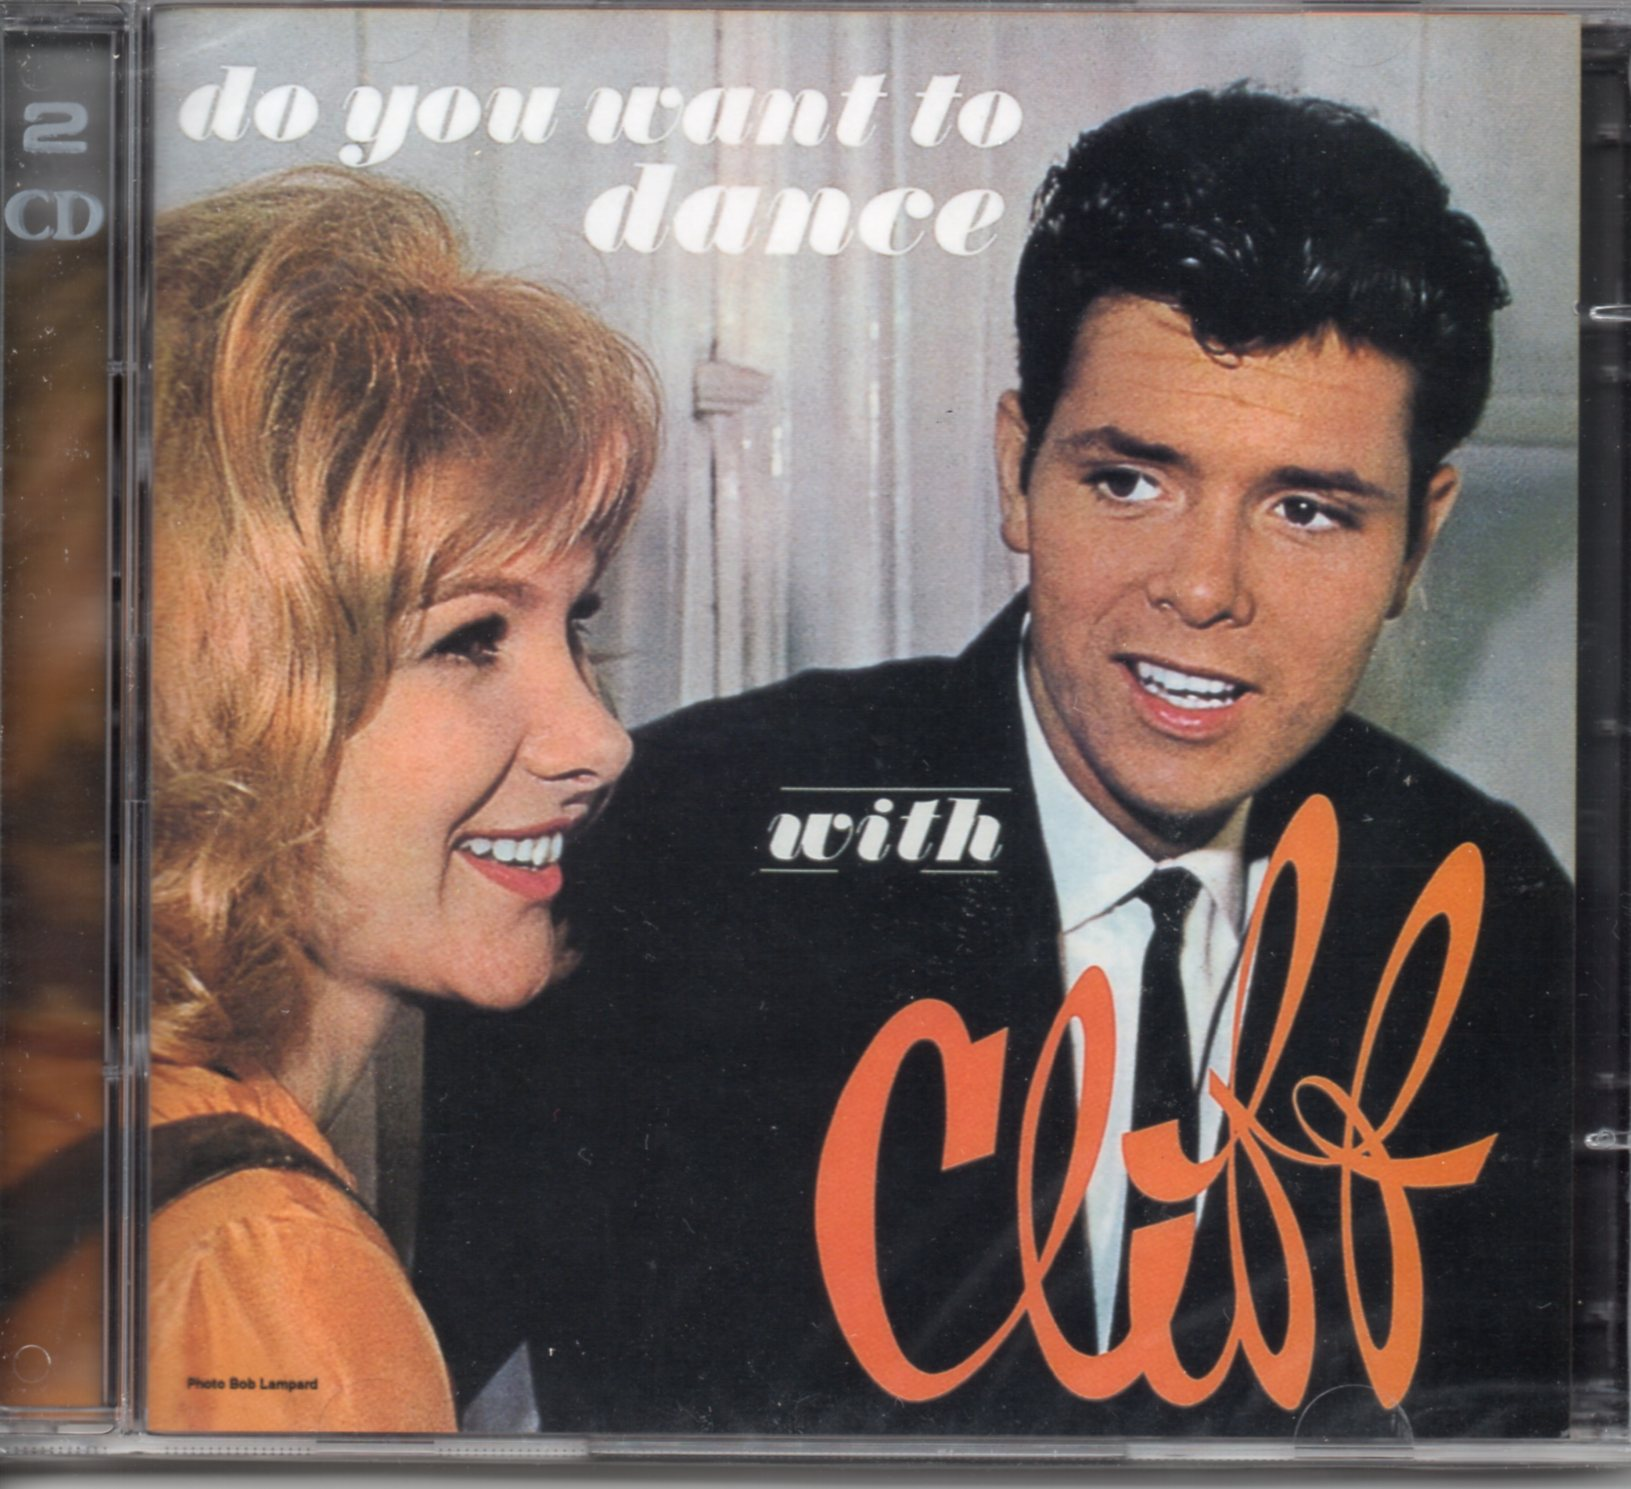 CLIFF RICHARD - THE SHADOWS - Do you want to dance with Cliff - CD x 2